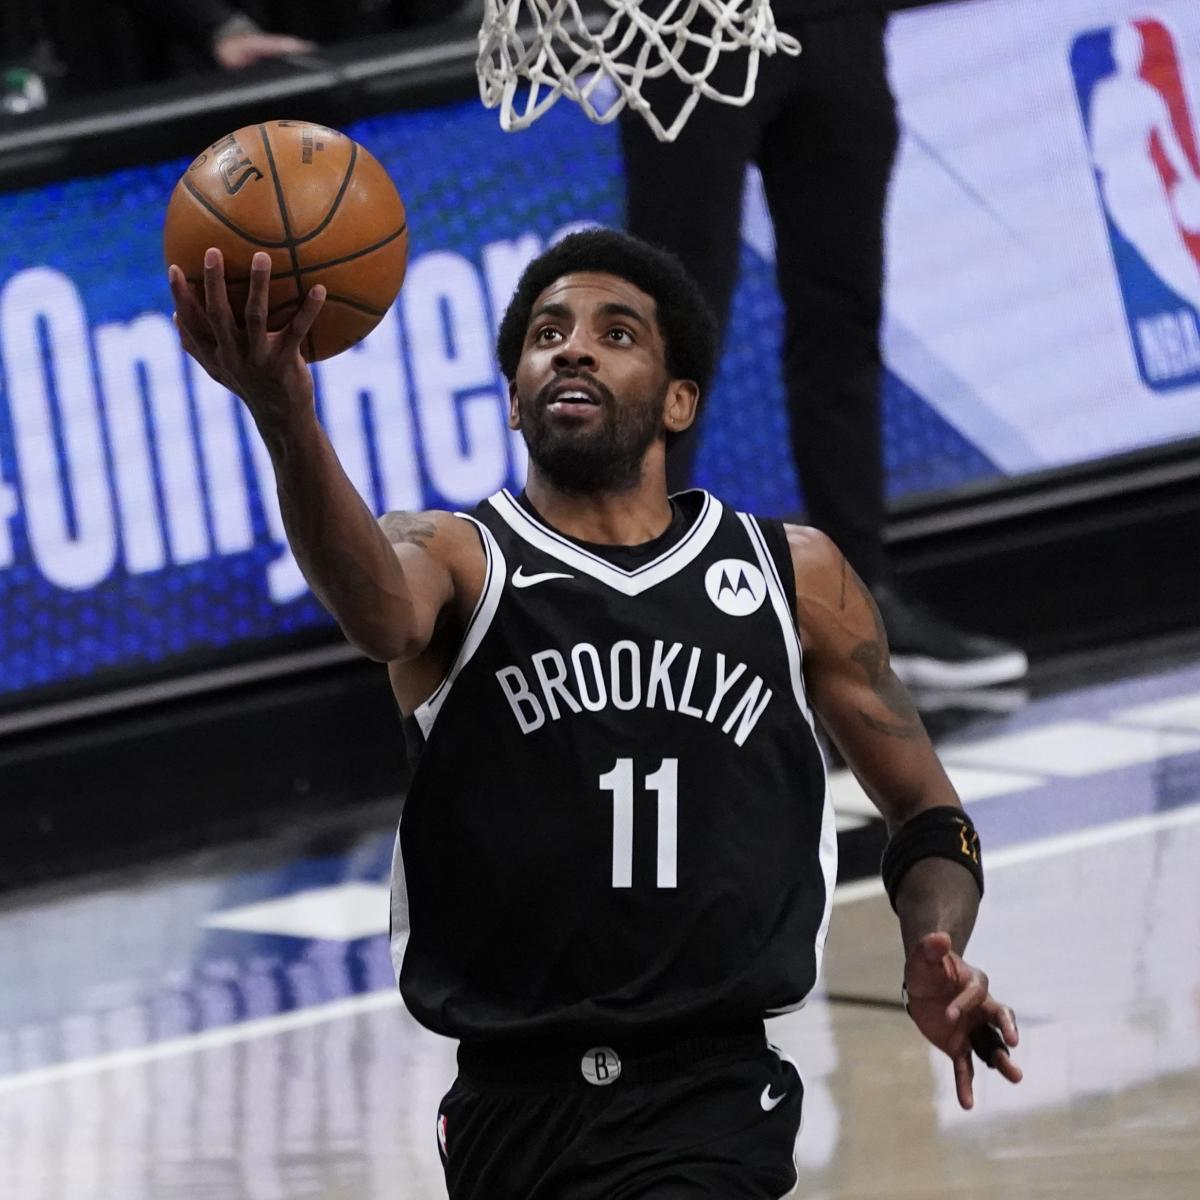 Kyrie Irving, Nets Top Celtics to Overtake 76ers for East's No. 1 Seed thumbnail